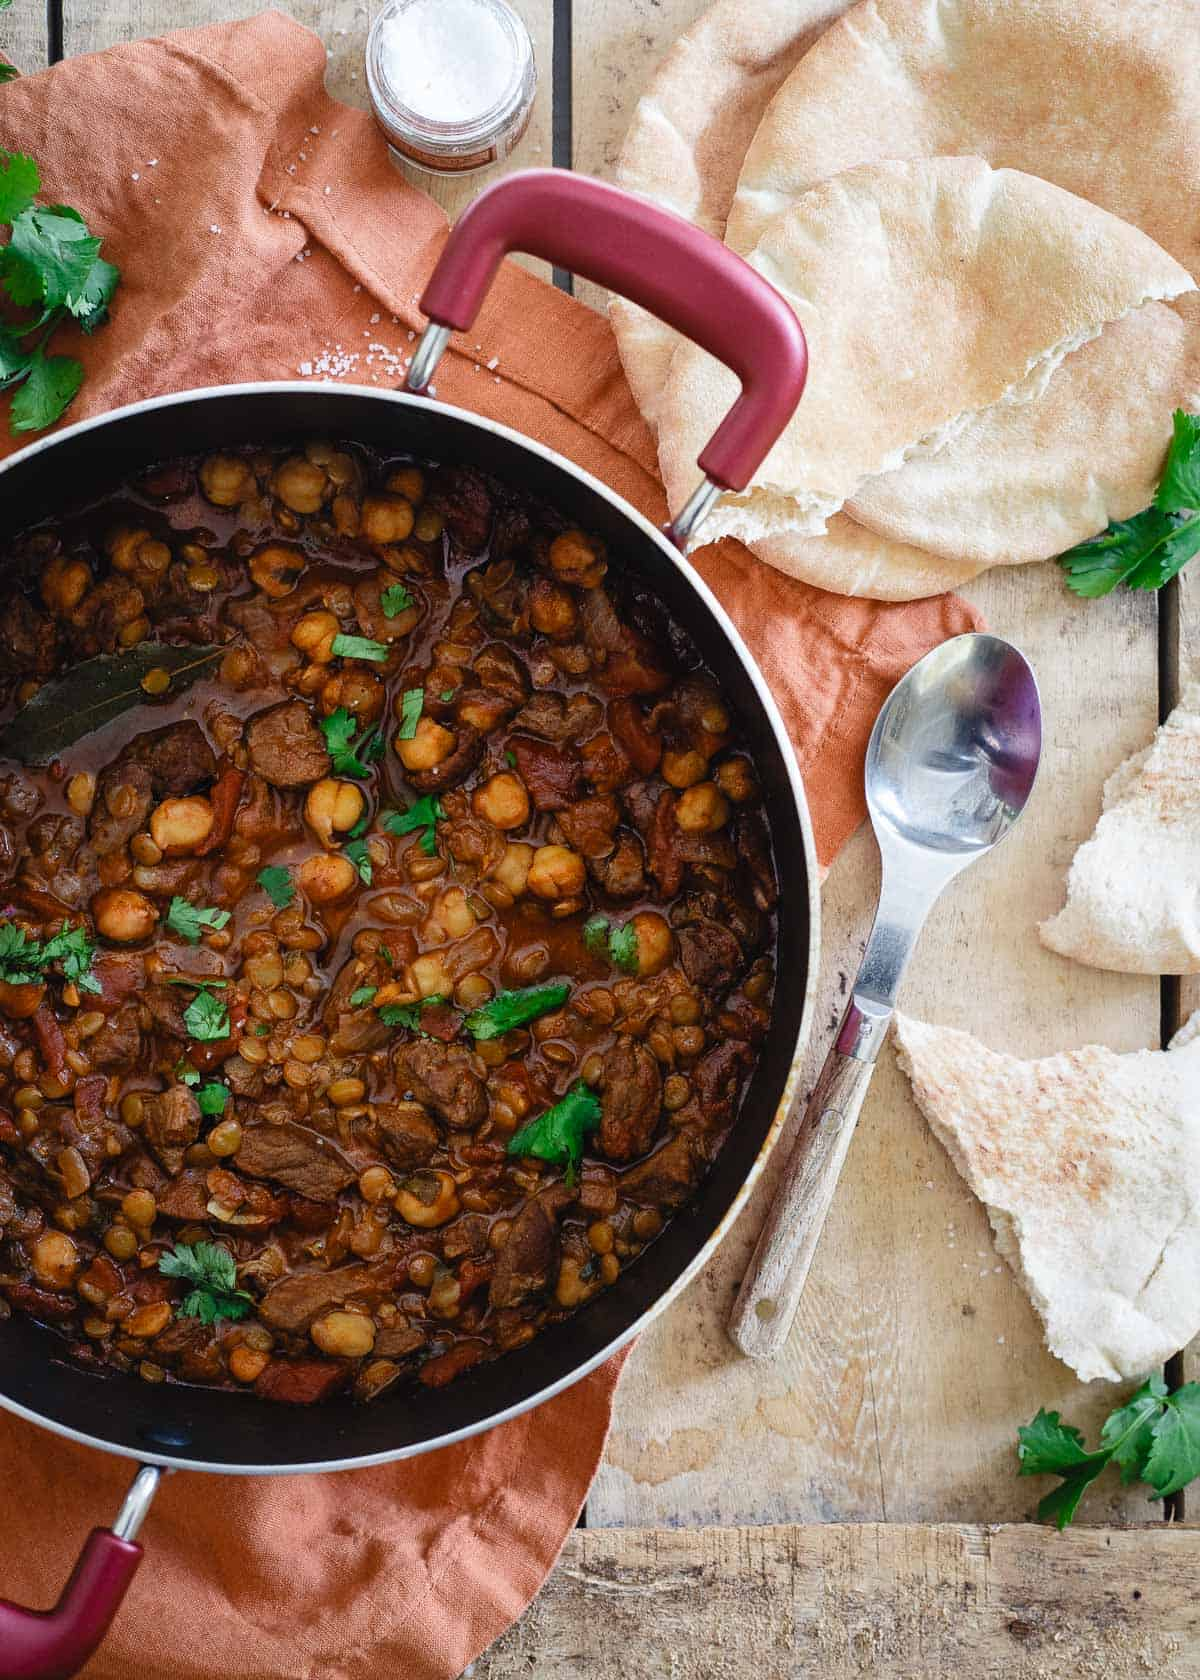 Cozy and comforting with flavorful Moroccan spices, this lamb lentil stew is a great winter meal for a cold day.